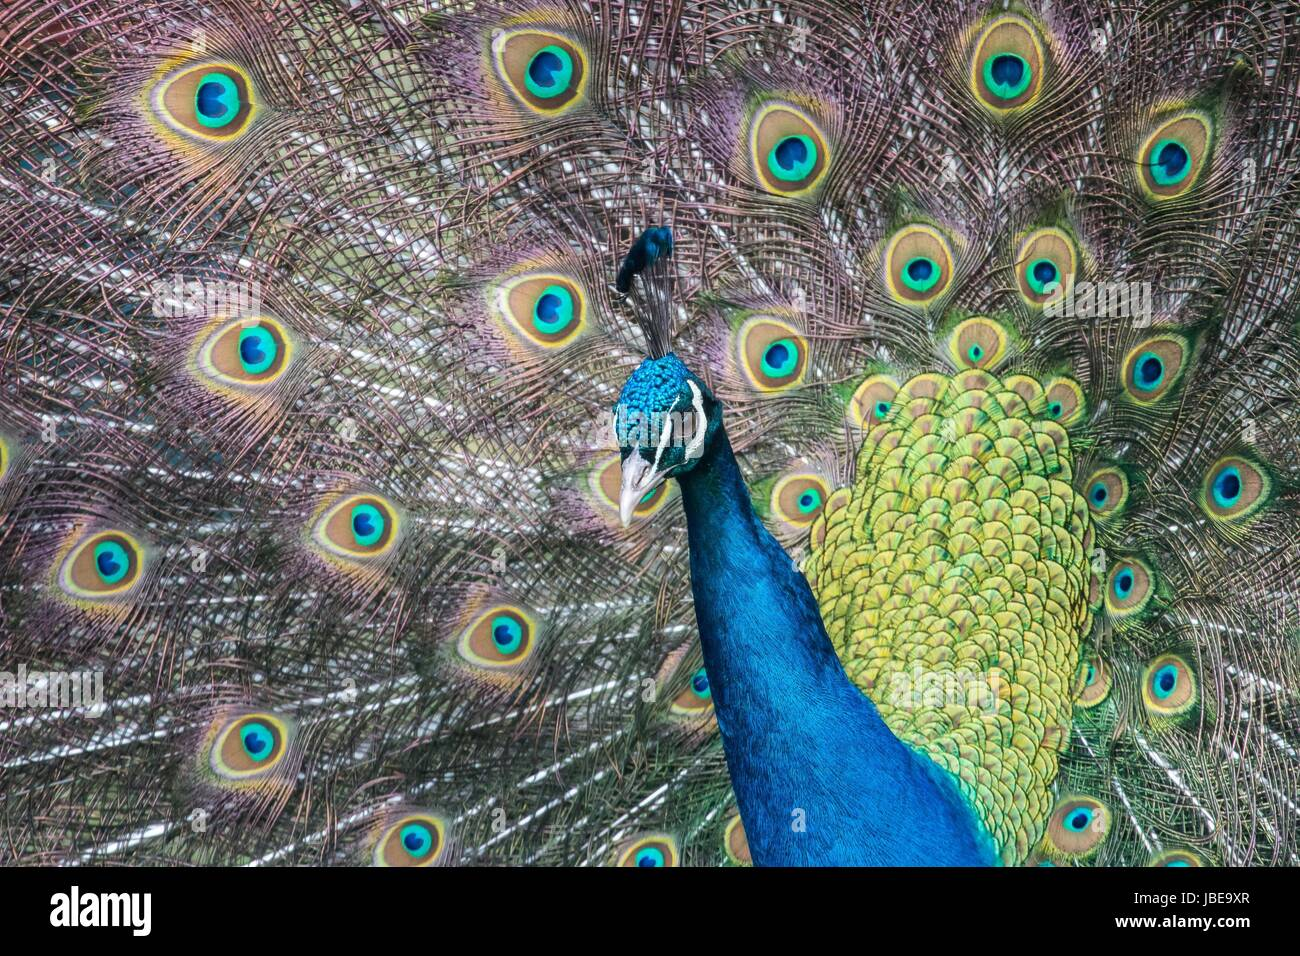 blue peacock - Stock Image